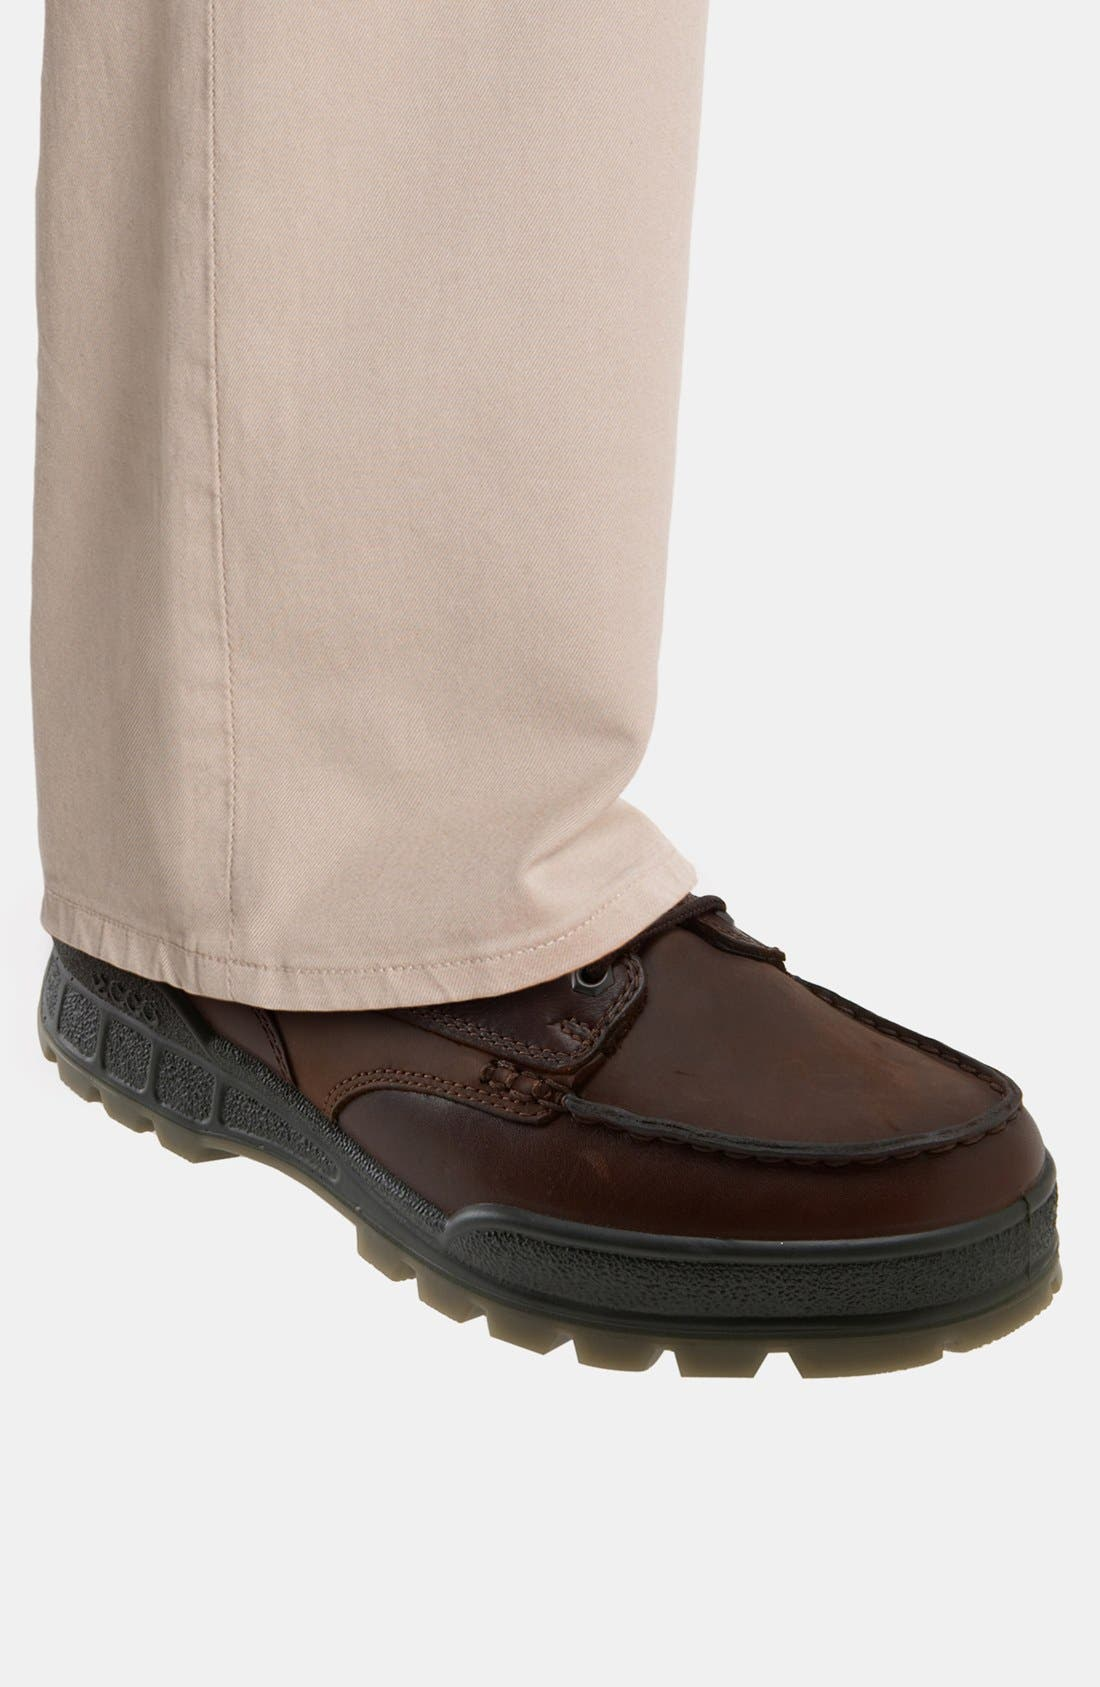 Track II High Boot,                             Alternate thumbnail 8, color,                             Bison